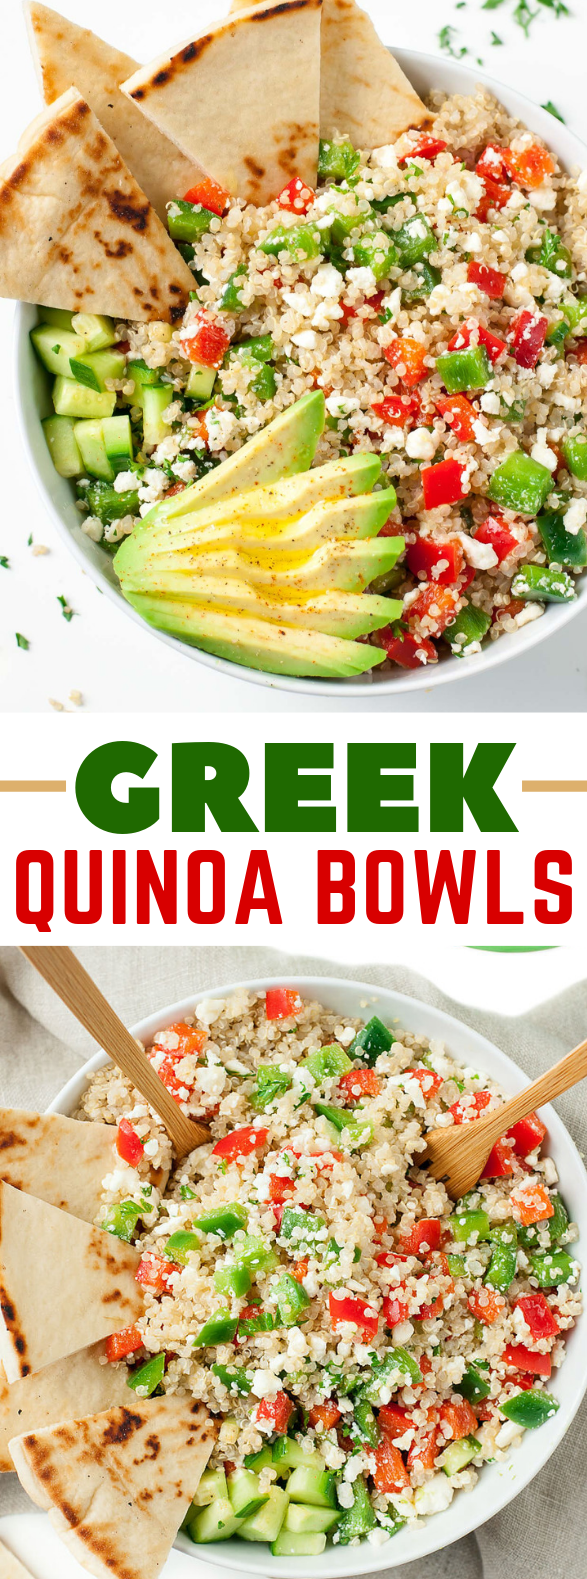 GREEK QUINOA BOWLS #healthydiet #veggies